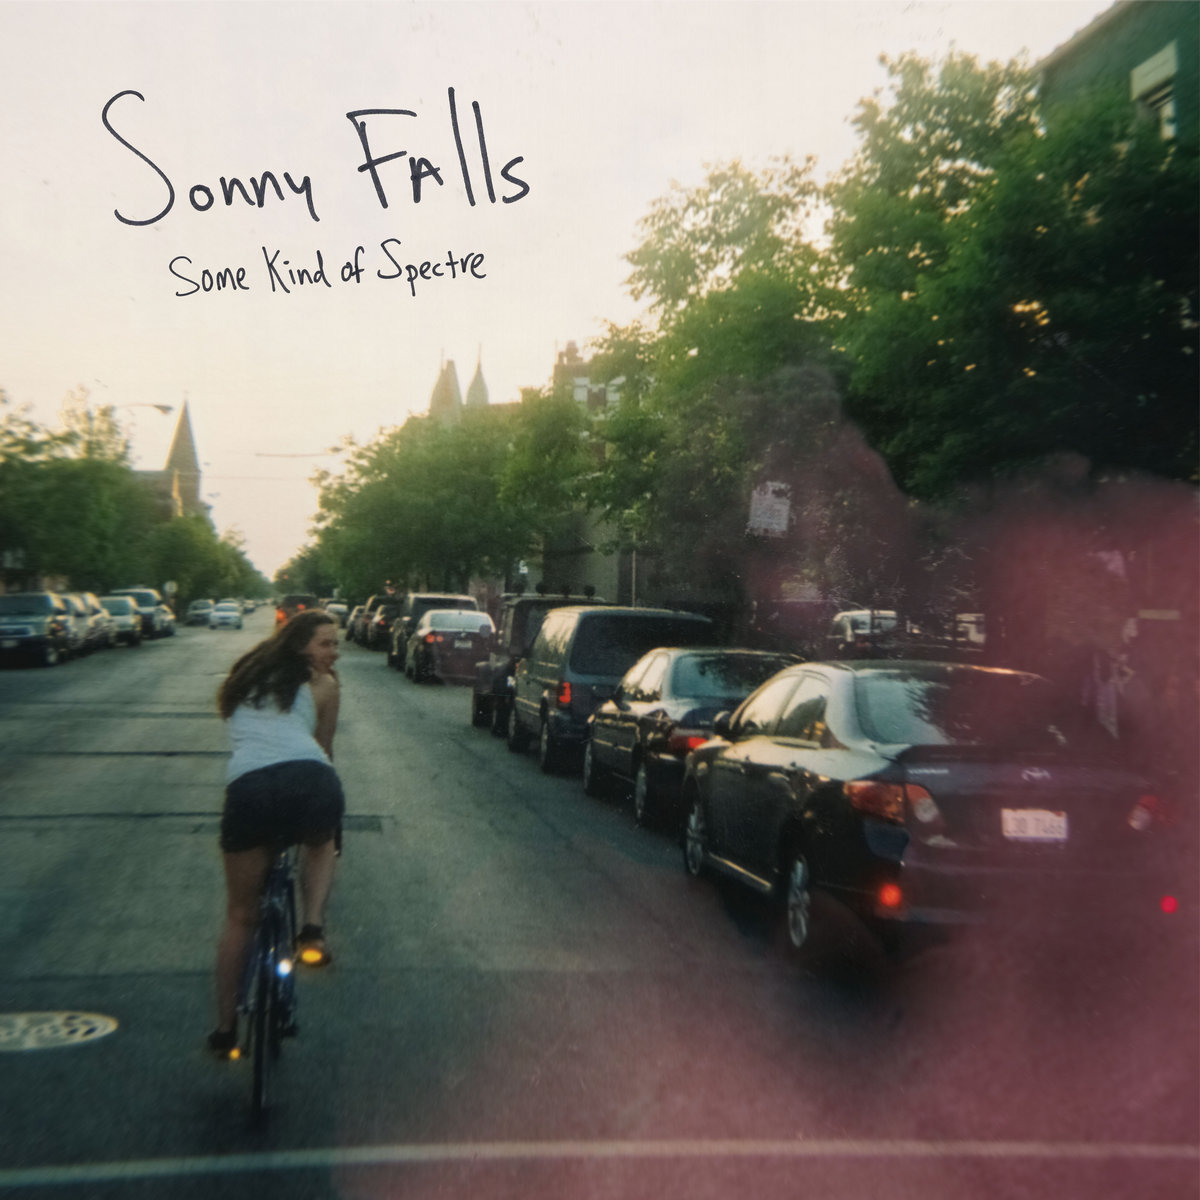 Image result for sonny falls some kind of spectre